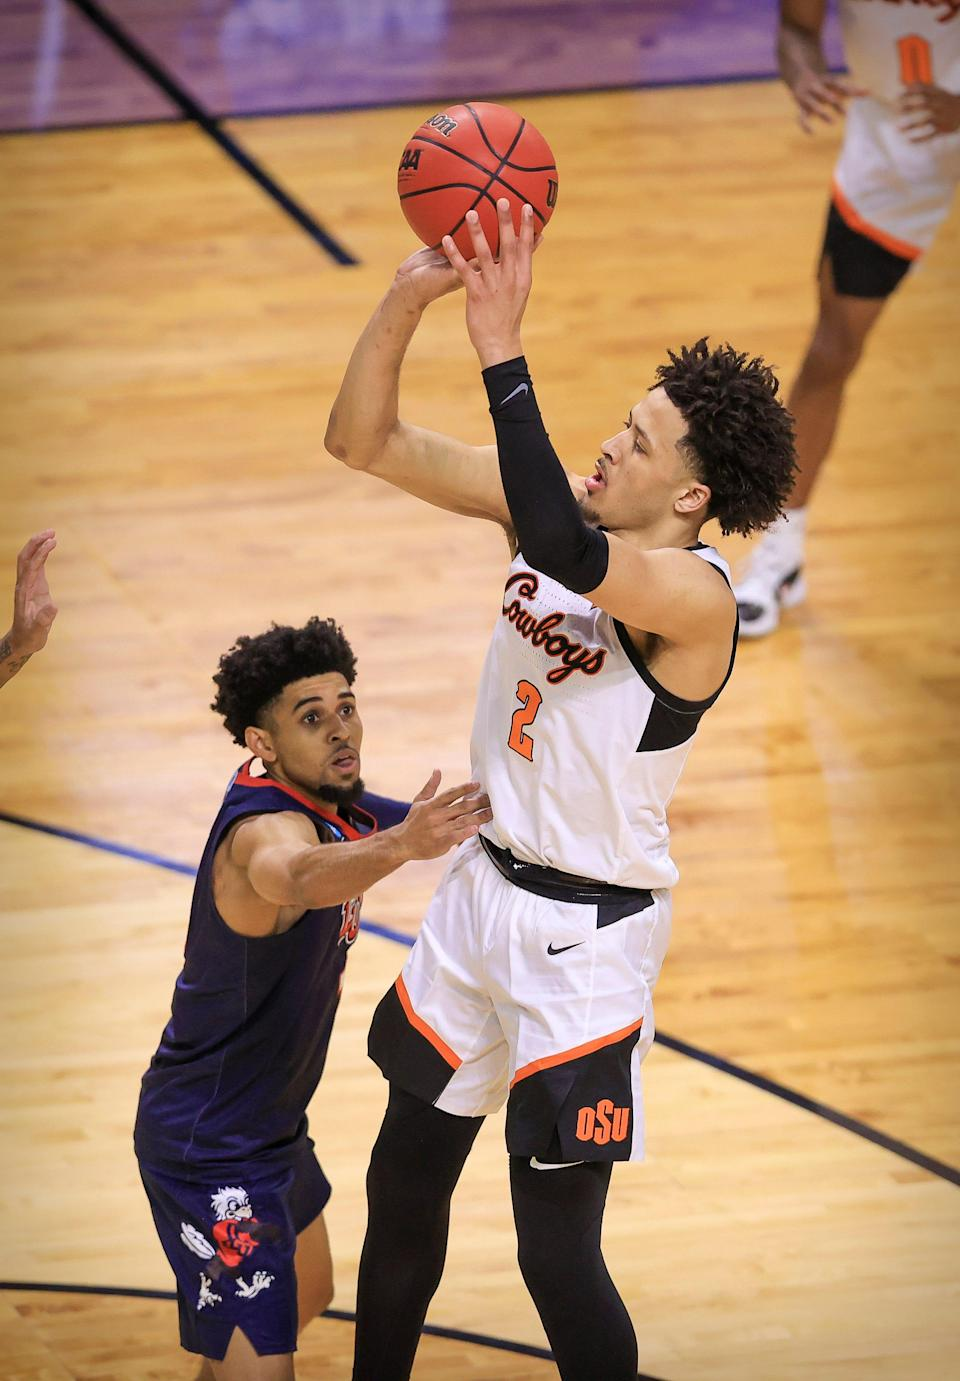 Oklahoma State's Cade Cunningham makes a jump shot against Liberty during the NCAA tournament March 19, 2021 in Indianapolis.